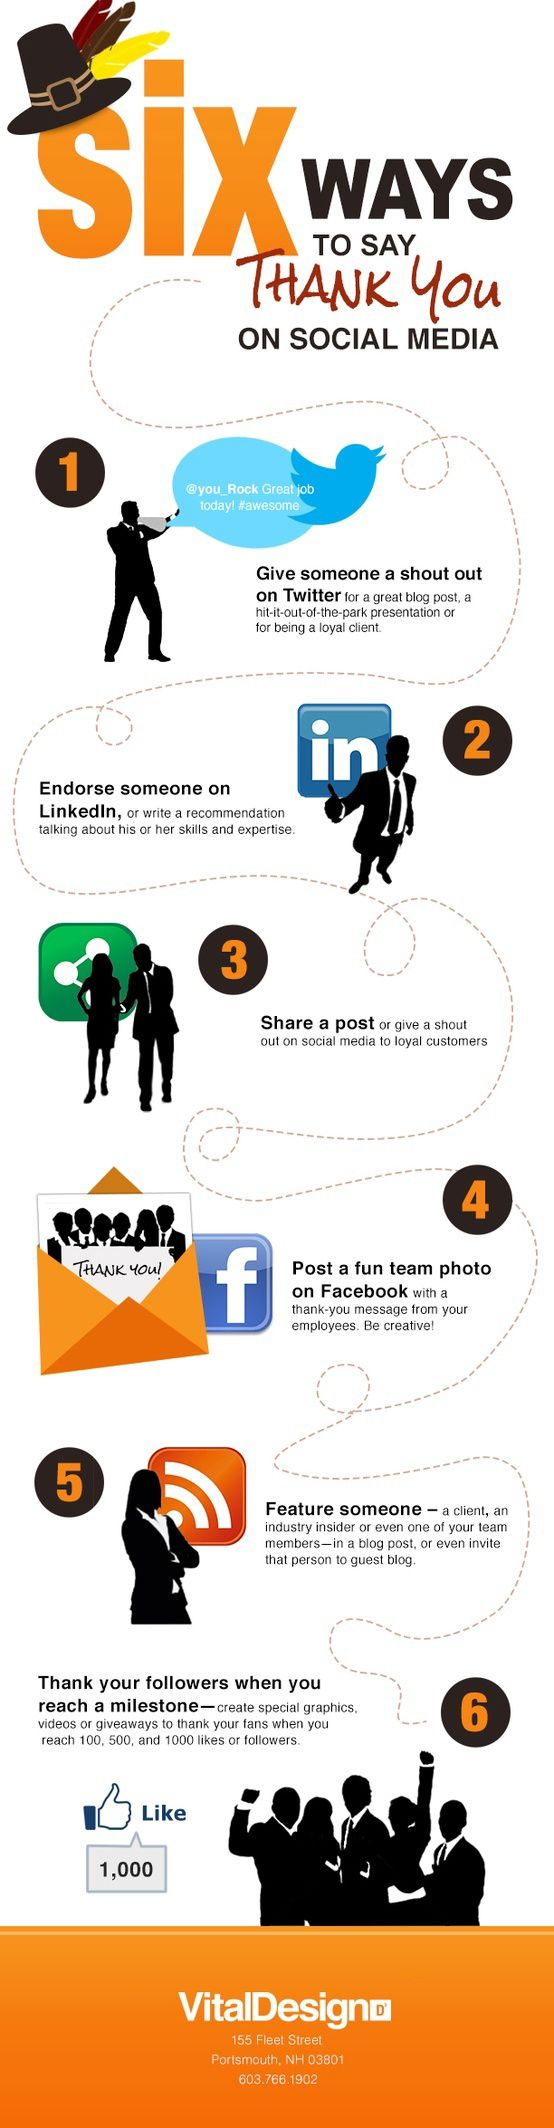 6 Ways To Say Thank You On Social Media [Infographic]    SOCIAL MEDIA | 18 Hours Ago By Richard DarellBe Th